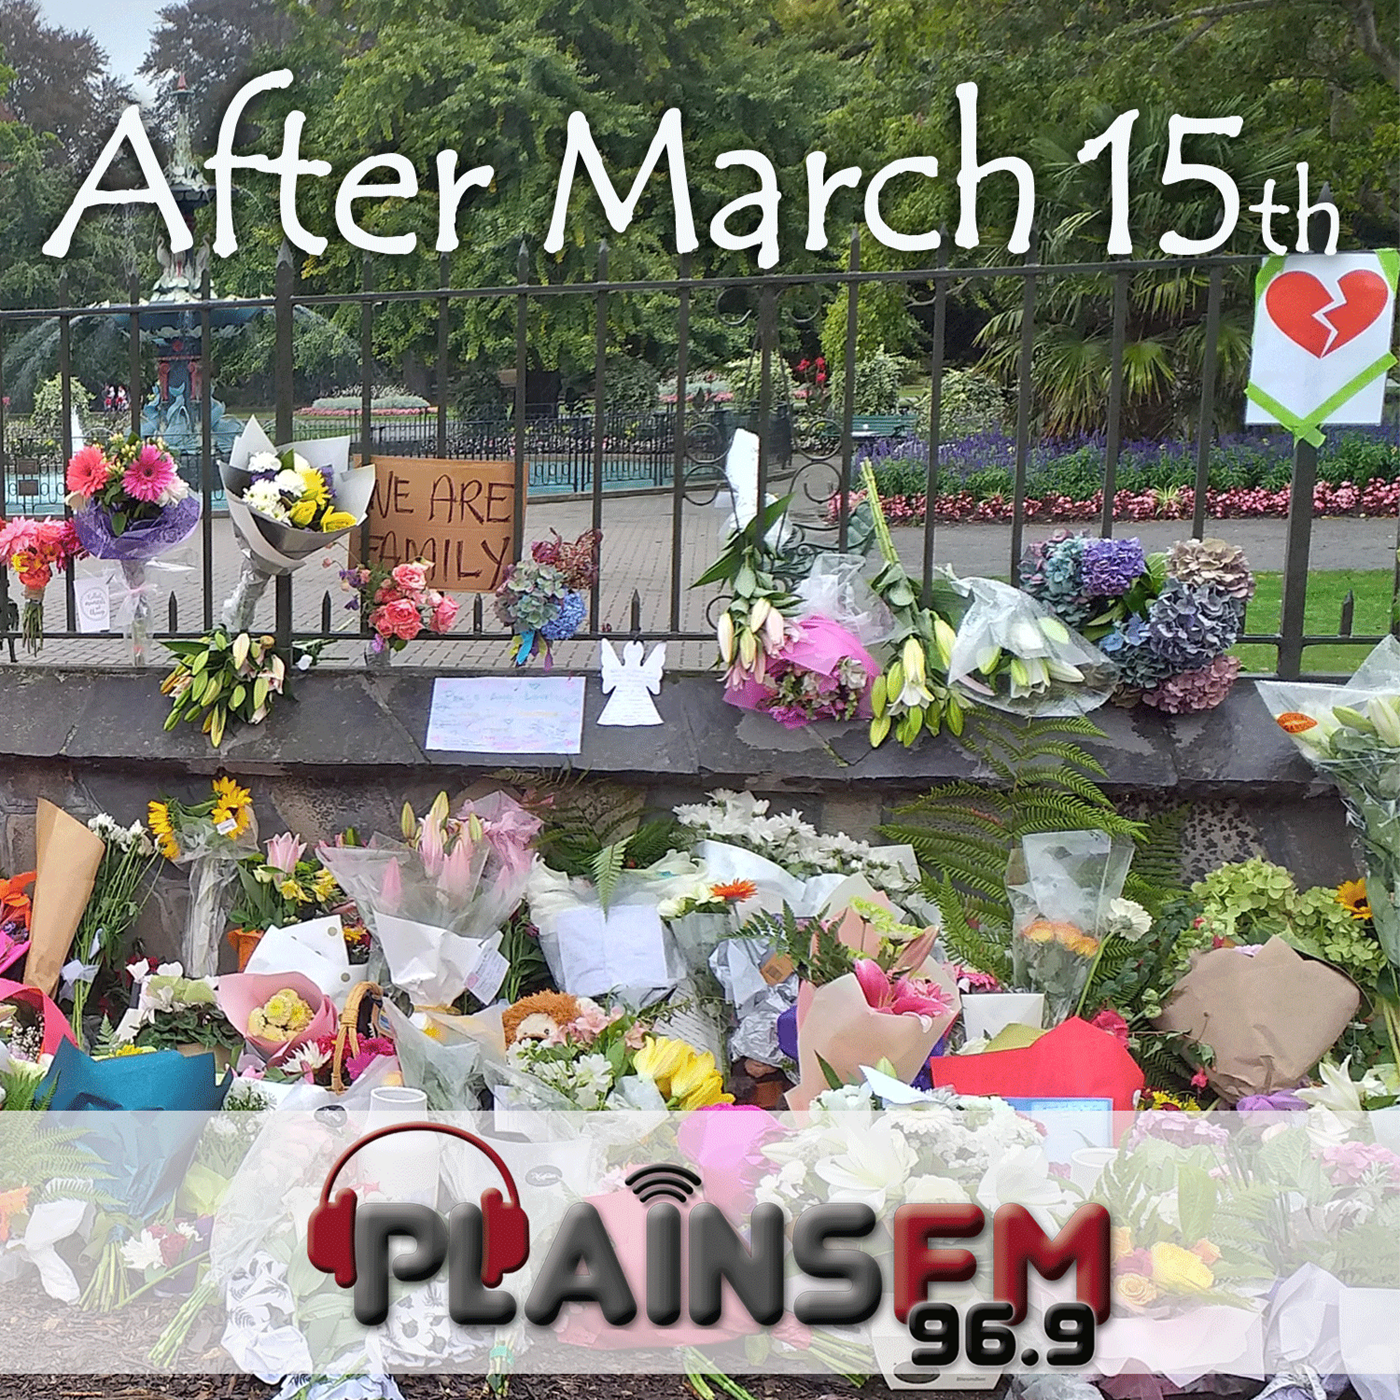 https://cdn.accessradio.org/StationFolder/plainsfm/Images/AfterMarch15th.png